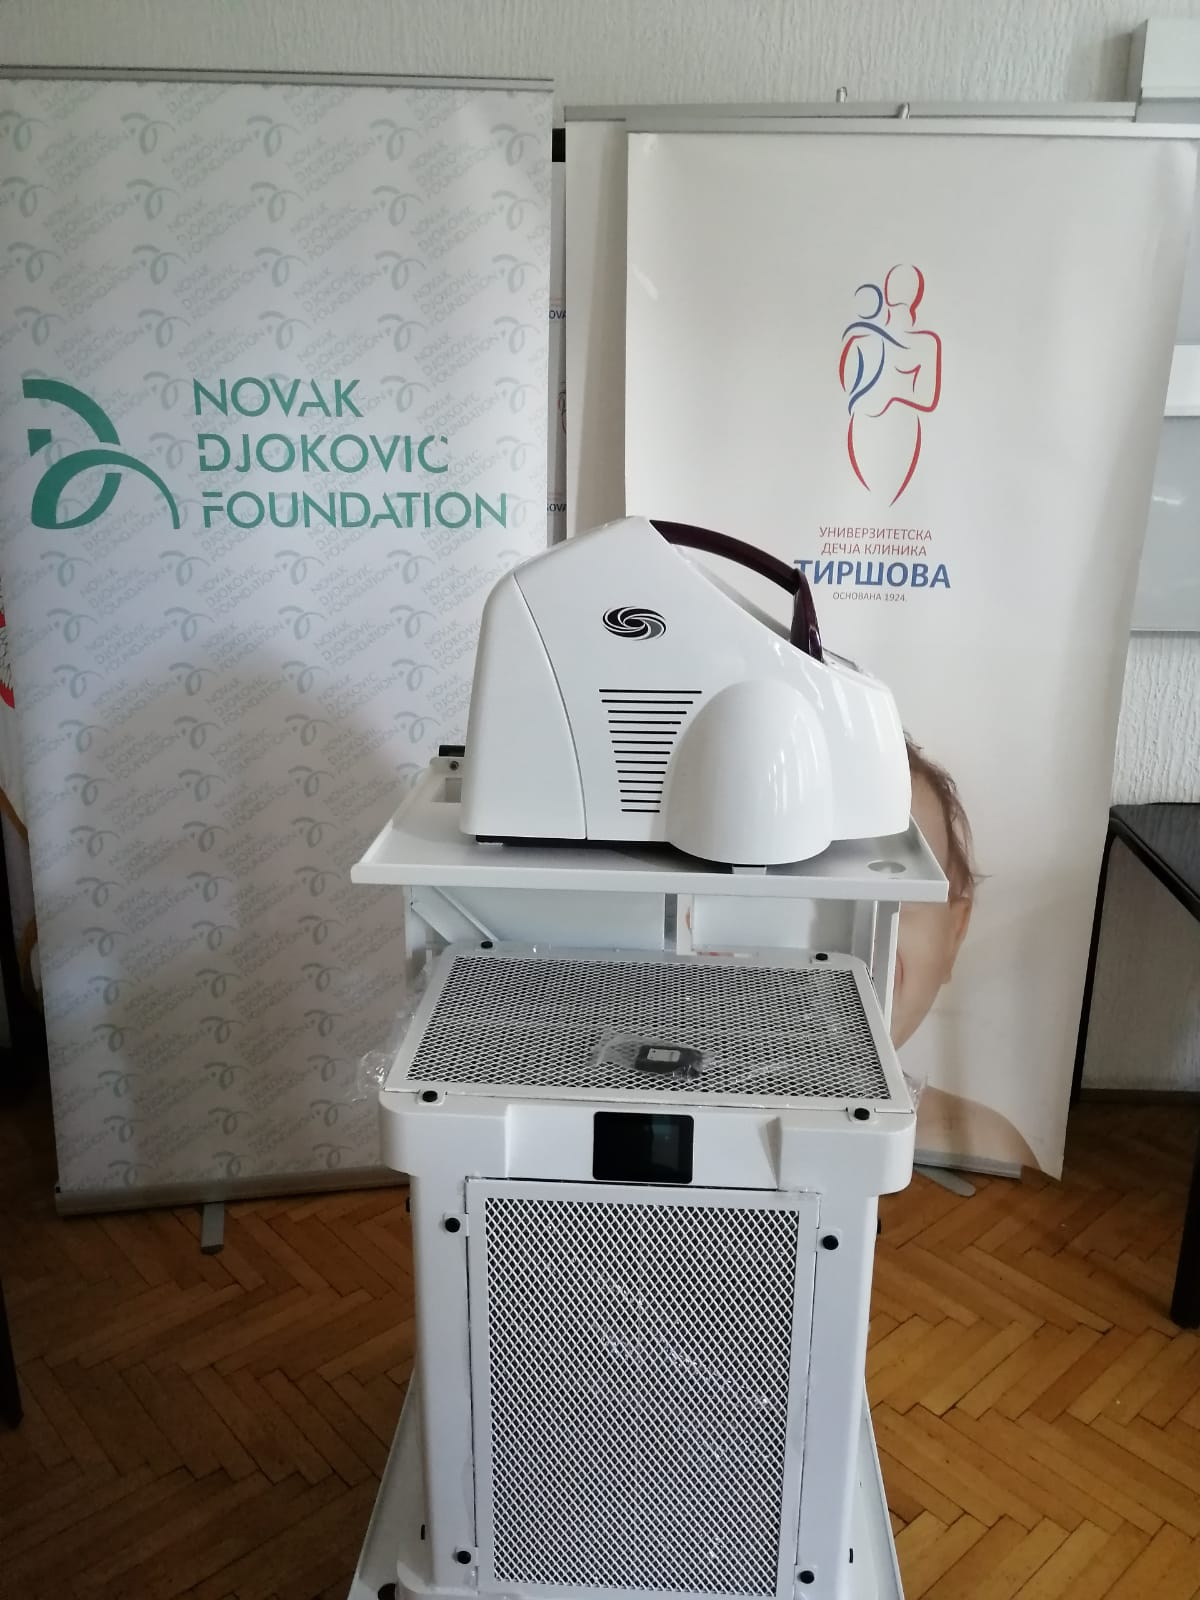 The Foundation has donated an AIRINSPACE device for surface disinfection to the University Children's Clinic - Tiršova.